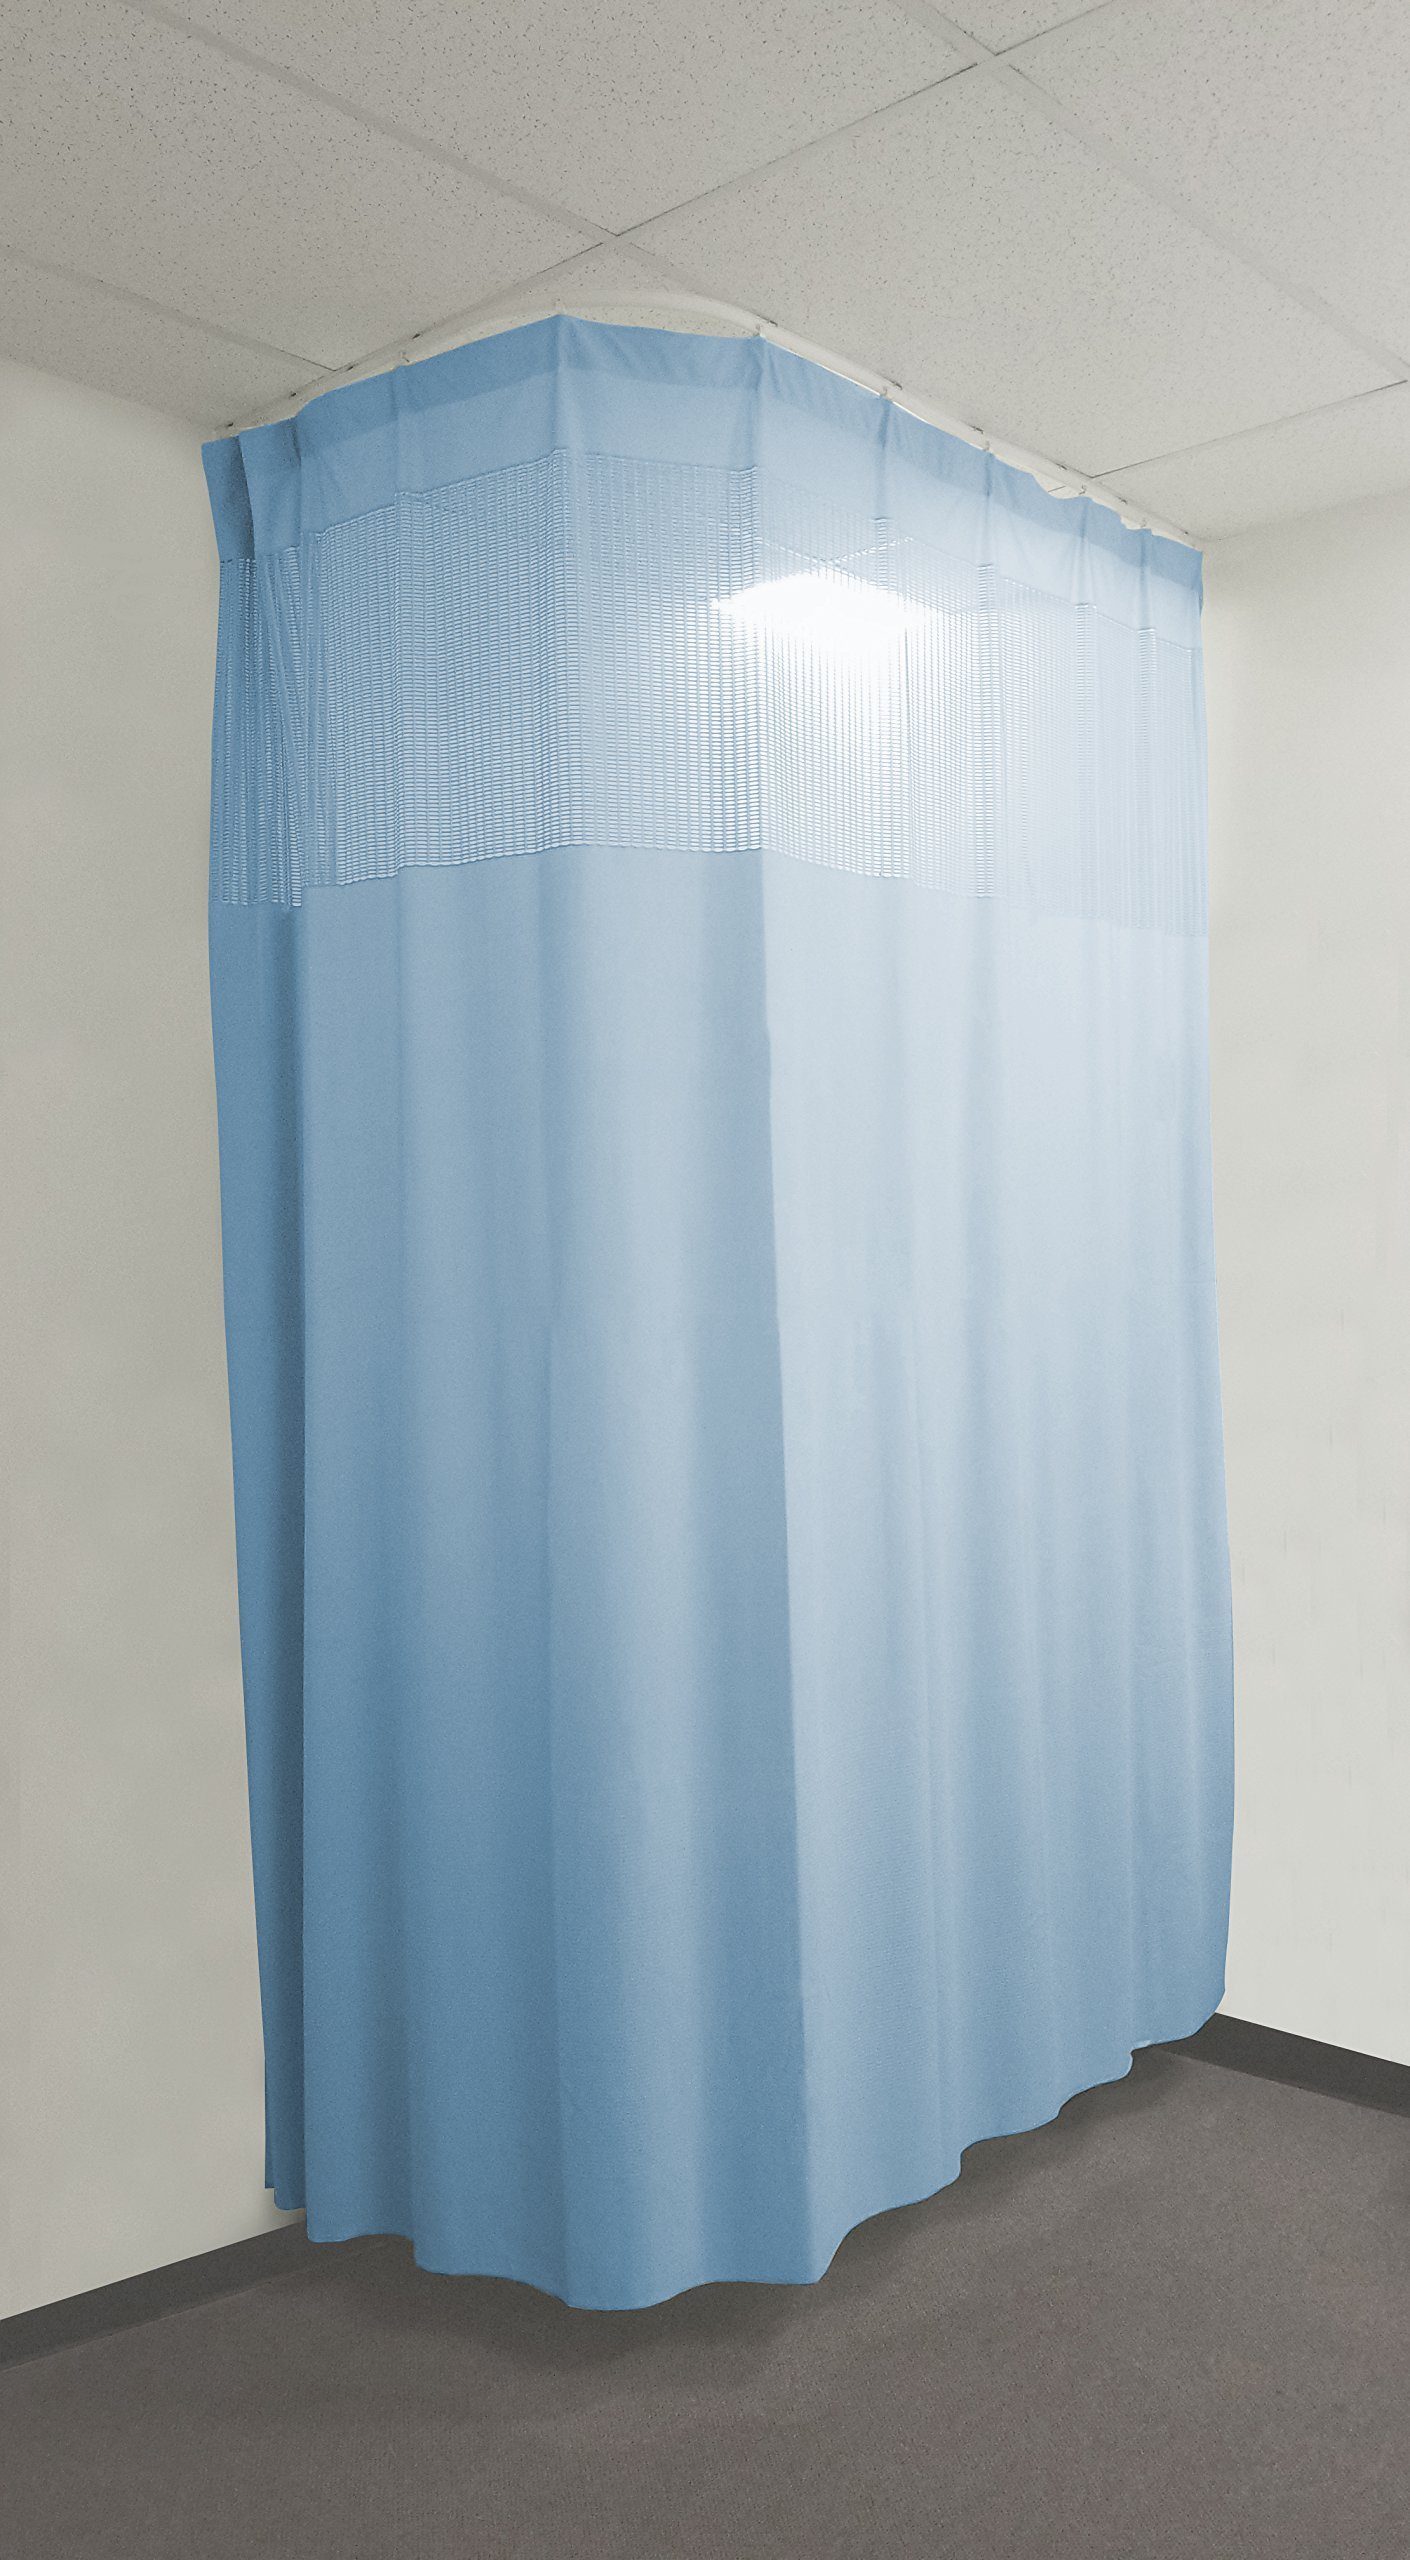 16ft Blue Medical Curtains Hospital Lab Clinic Room Decorative w/ Track- 9.5ft High